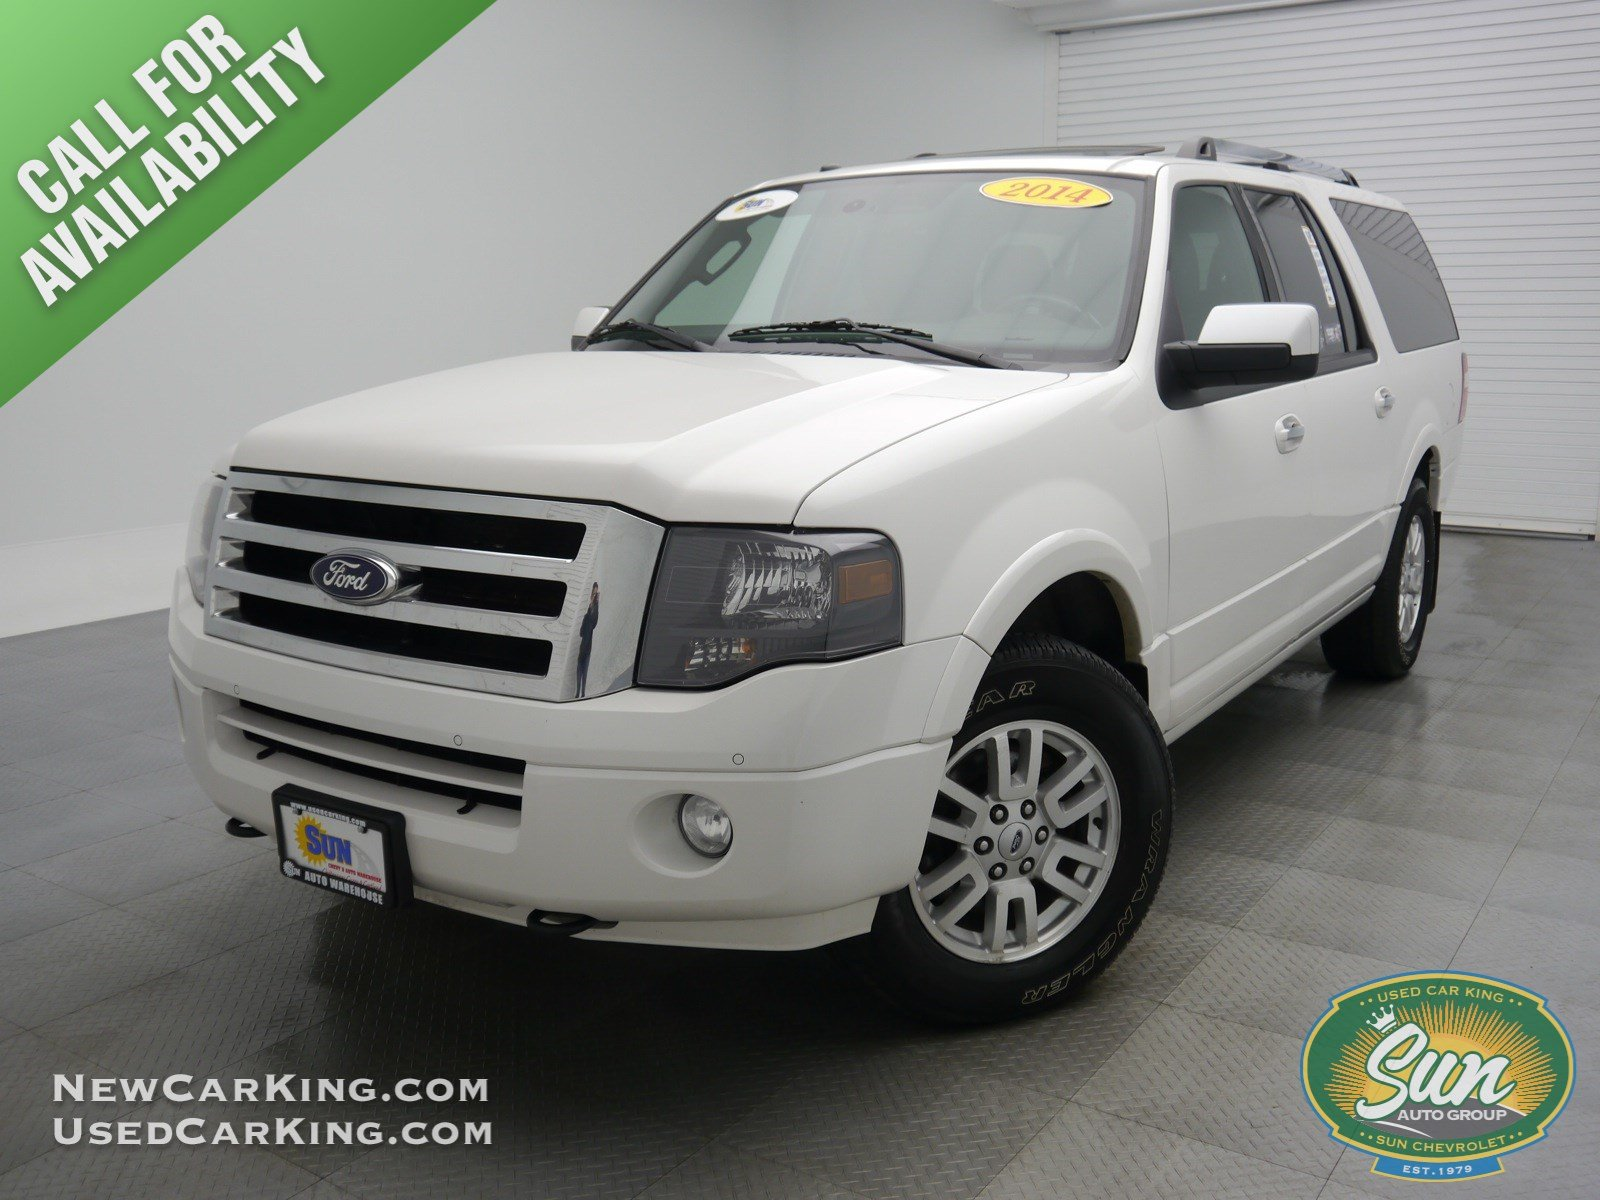 vehicles el expedition wa ellensburg vehicle ford in sale photo used for vehiclesearchresults